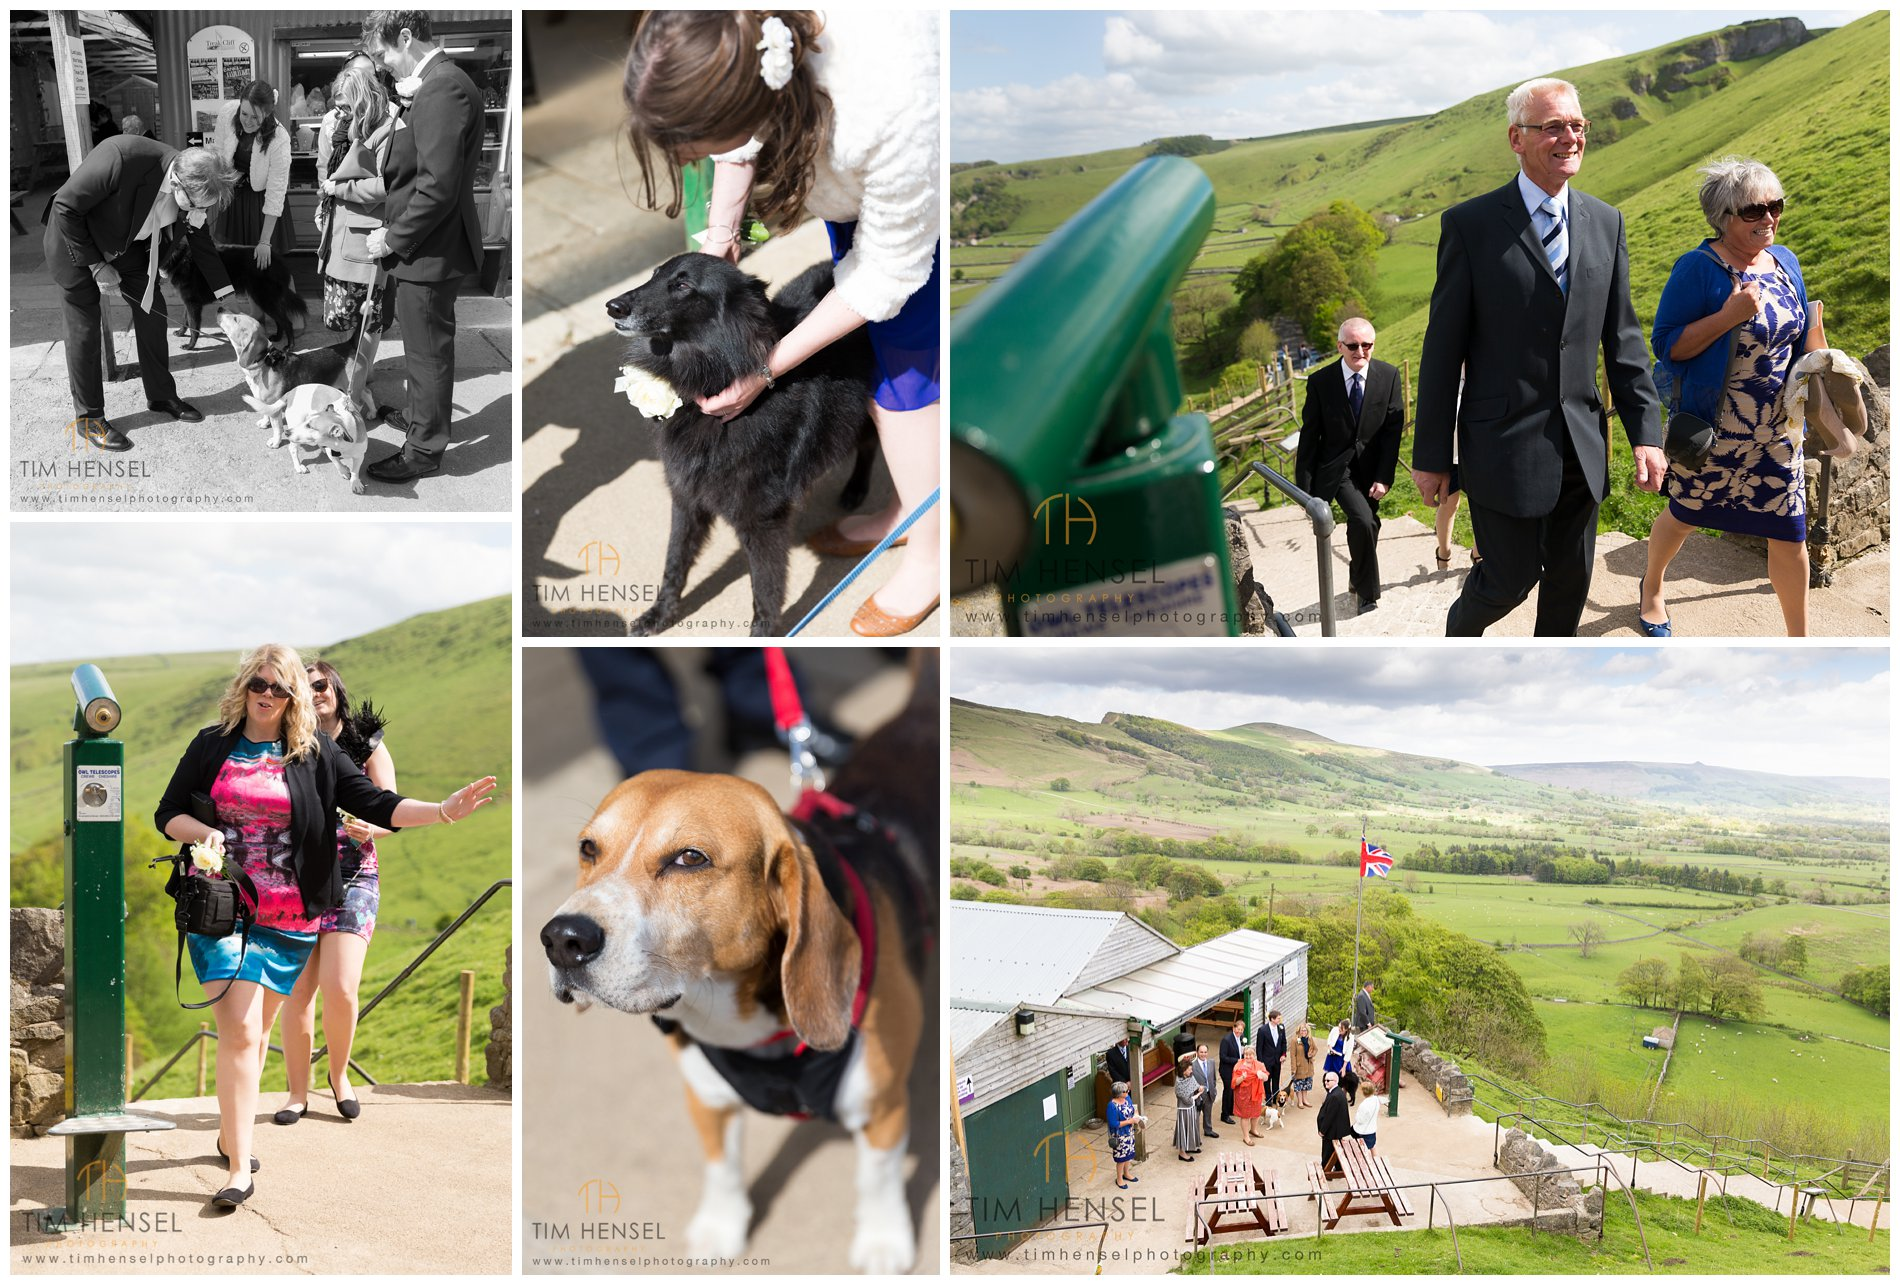 Guests arrive for a wedding at Treak Cliff Cavern in Derbyshire